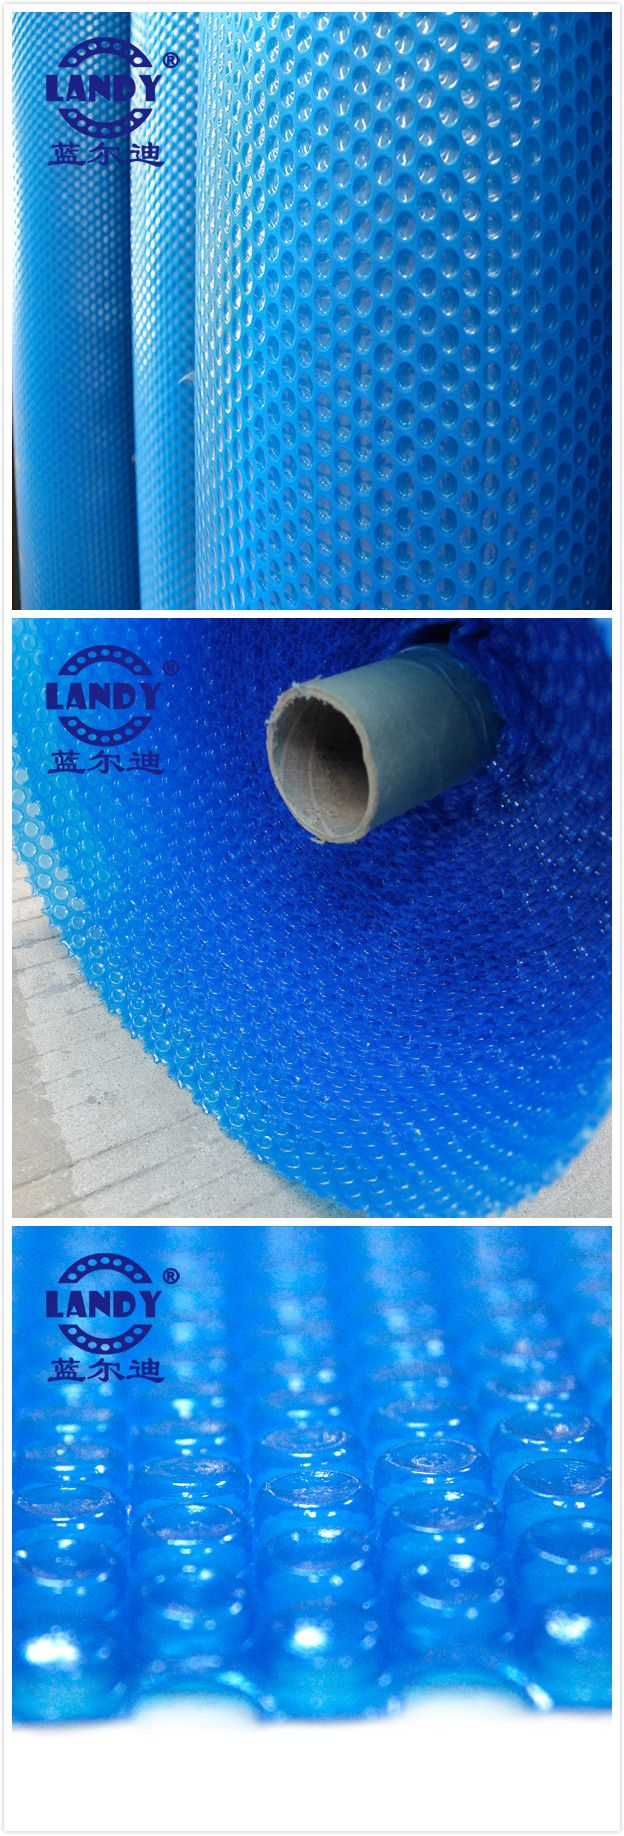 400 Micron Solar Cover Solarcover Bubblecover Poolcover Pool Spas Landy Solar Cover Pool Cover Swimming Pools